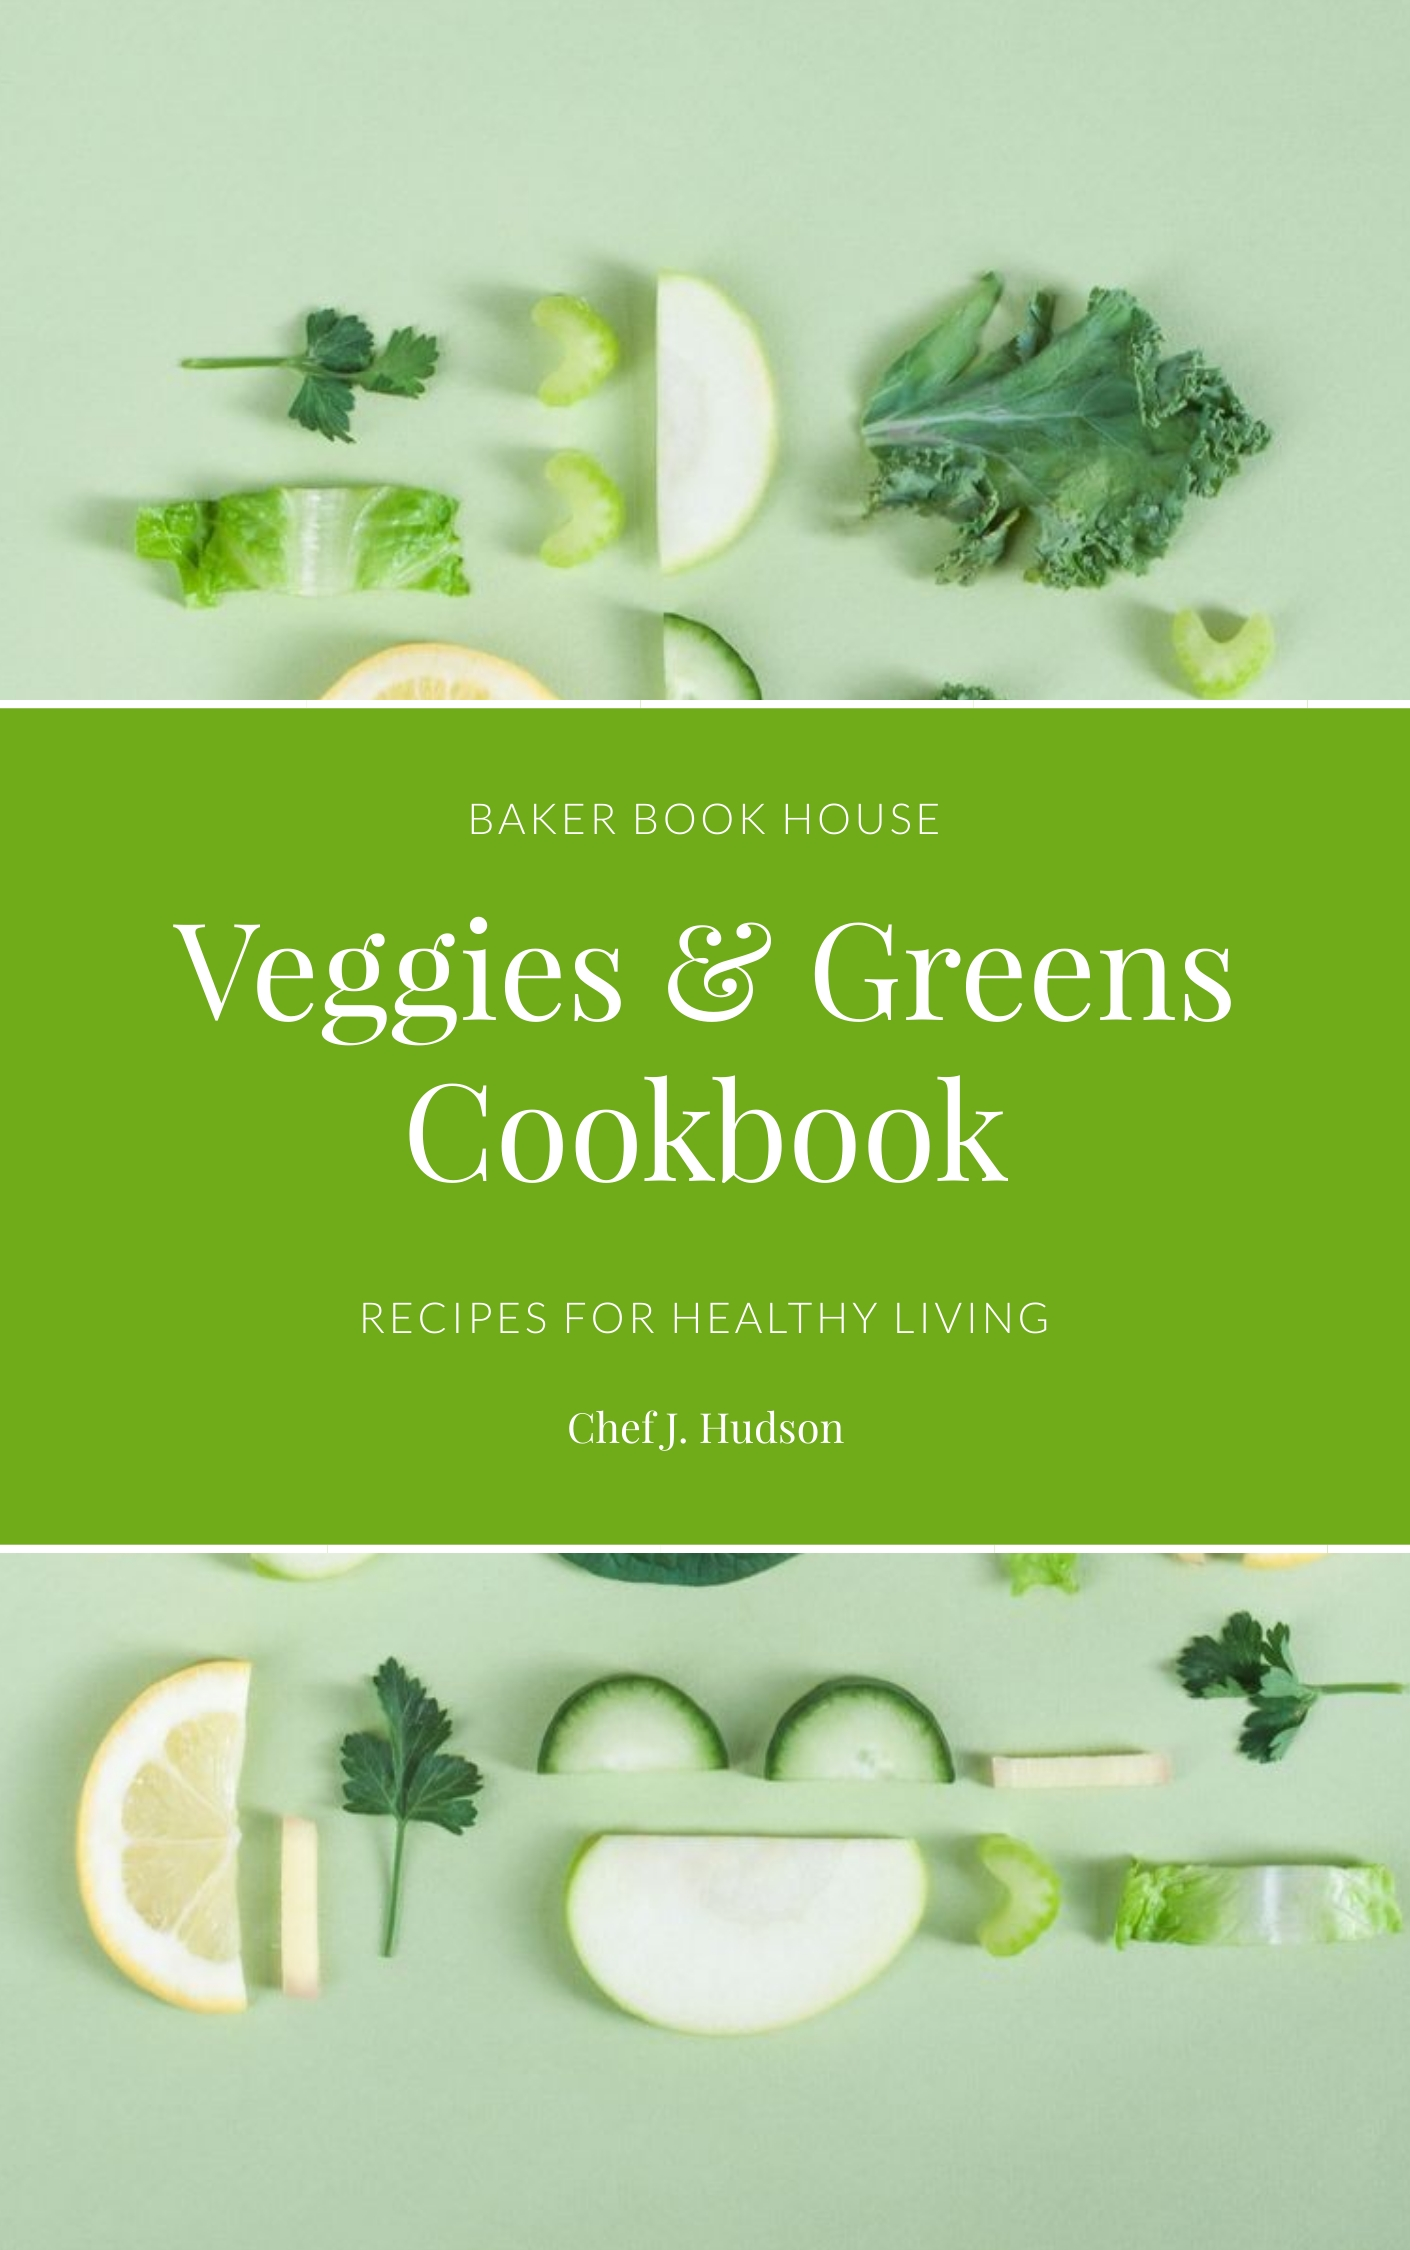 Cook - Book Cover Template